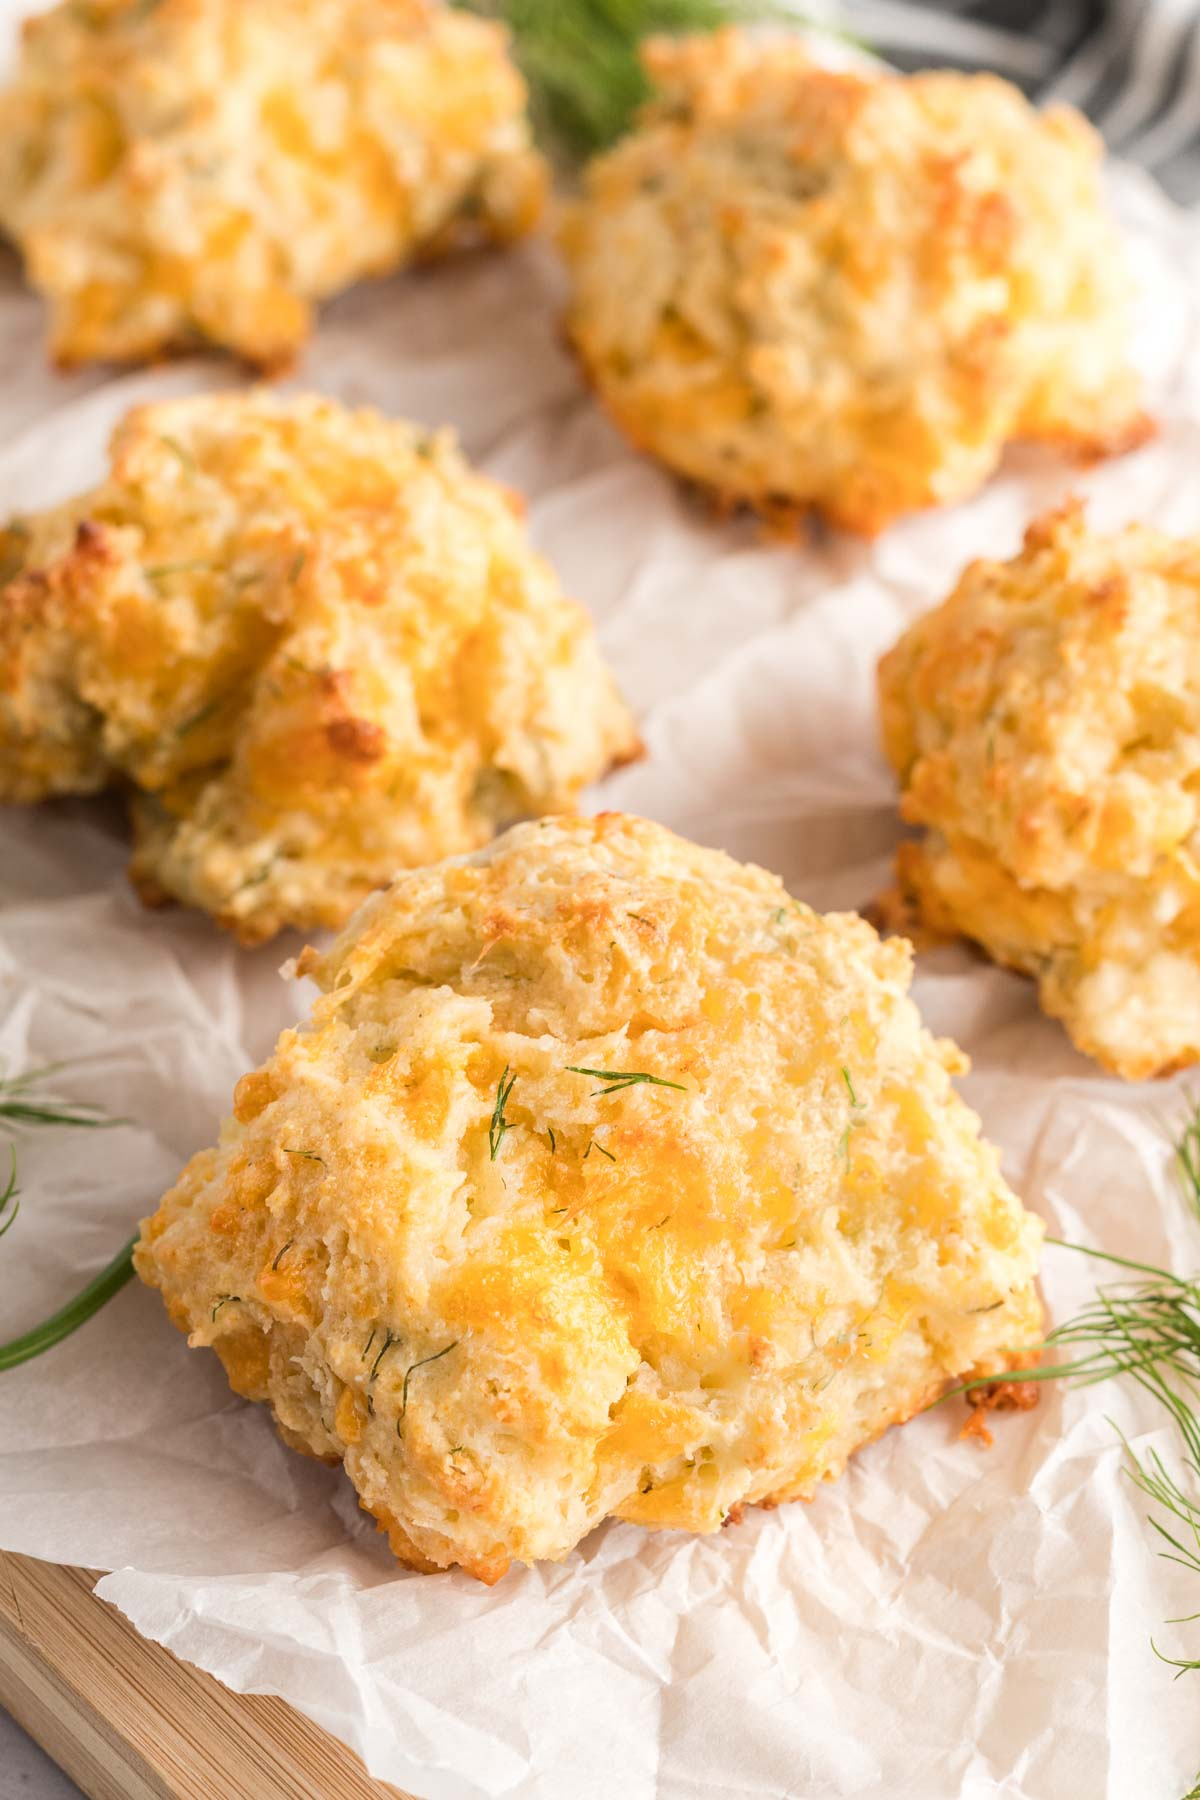 Biscuits in a single layer on parchment paper and garnished with fresh dill.